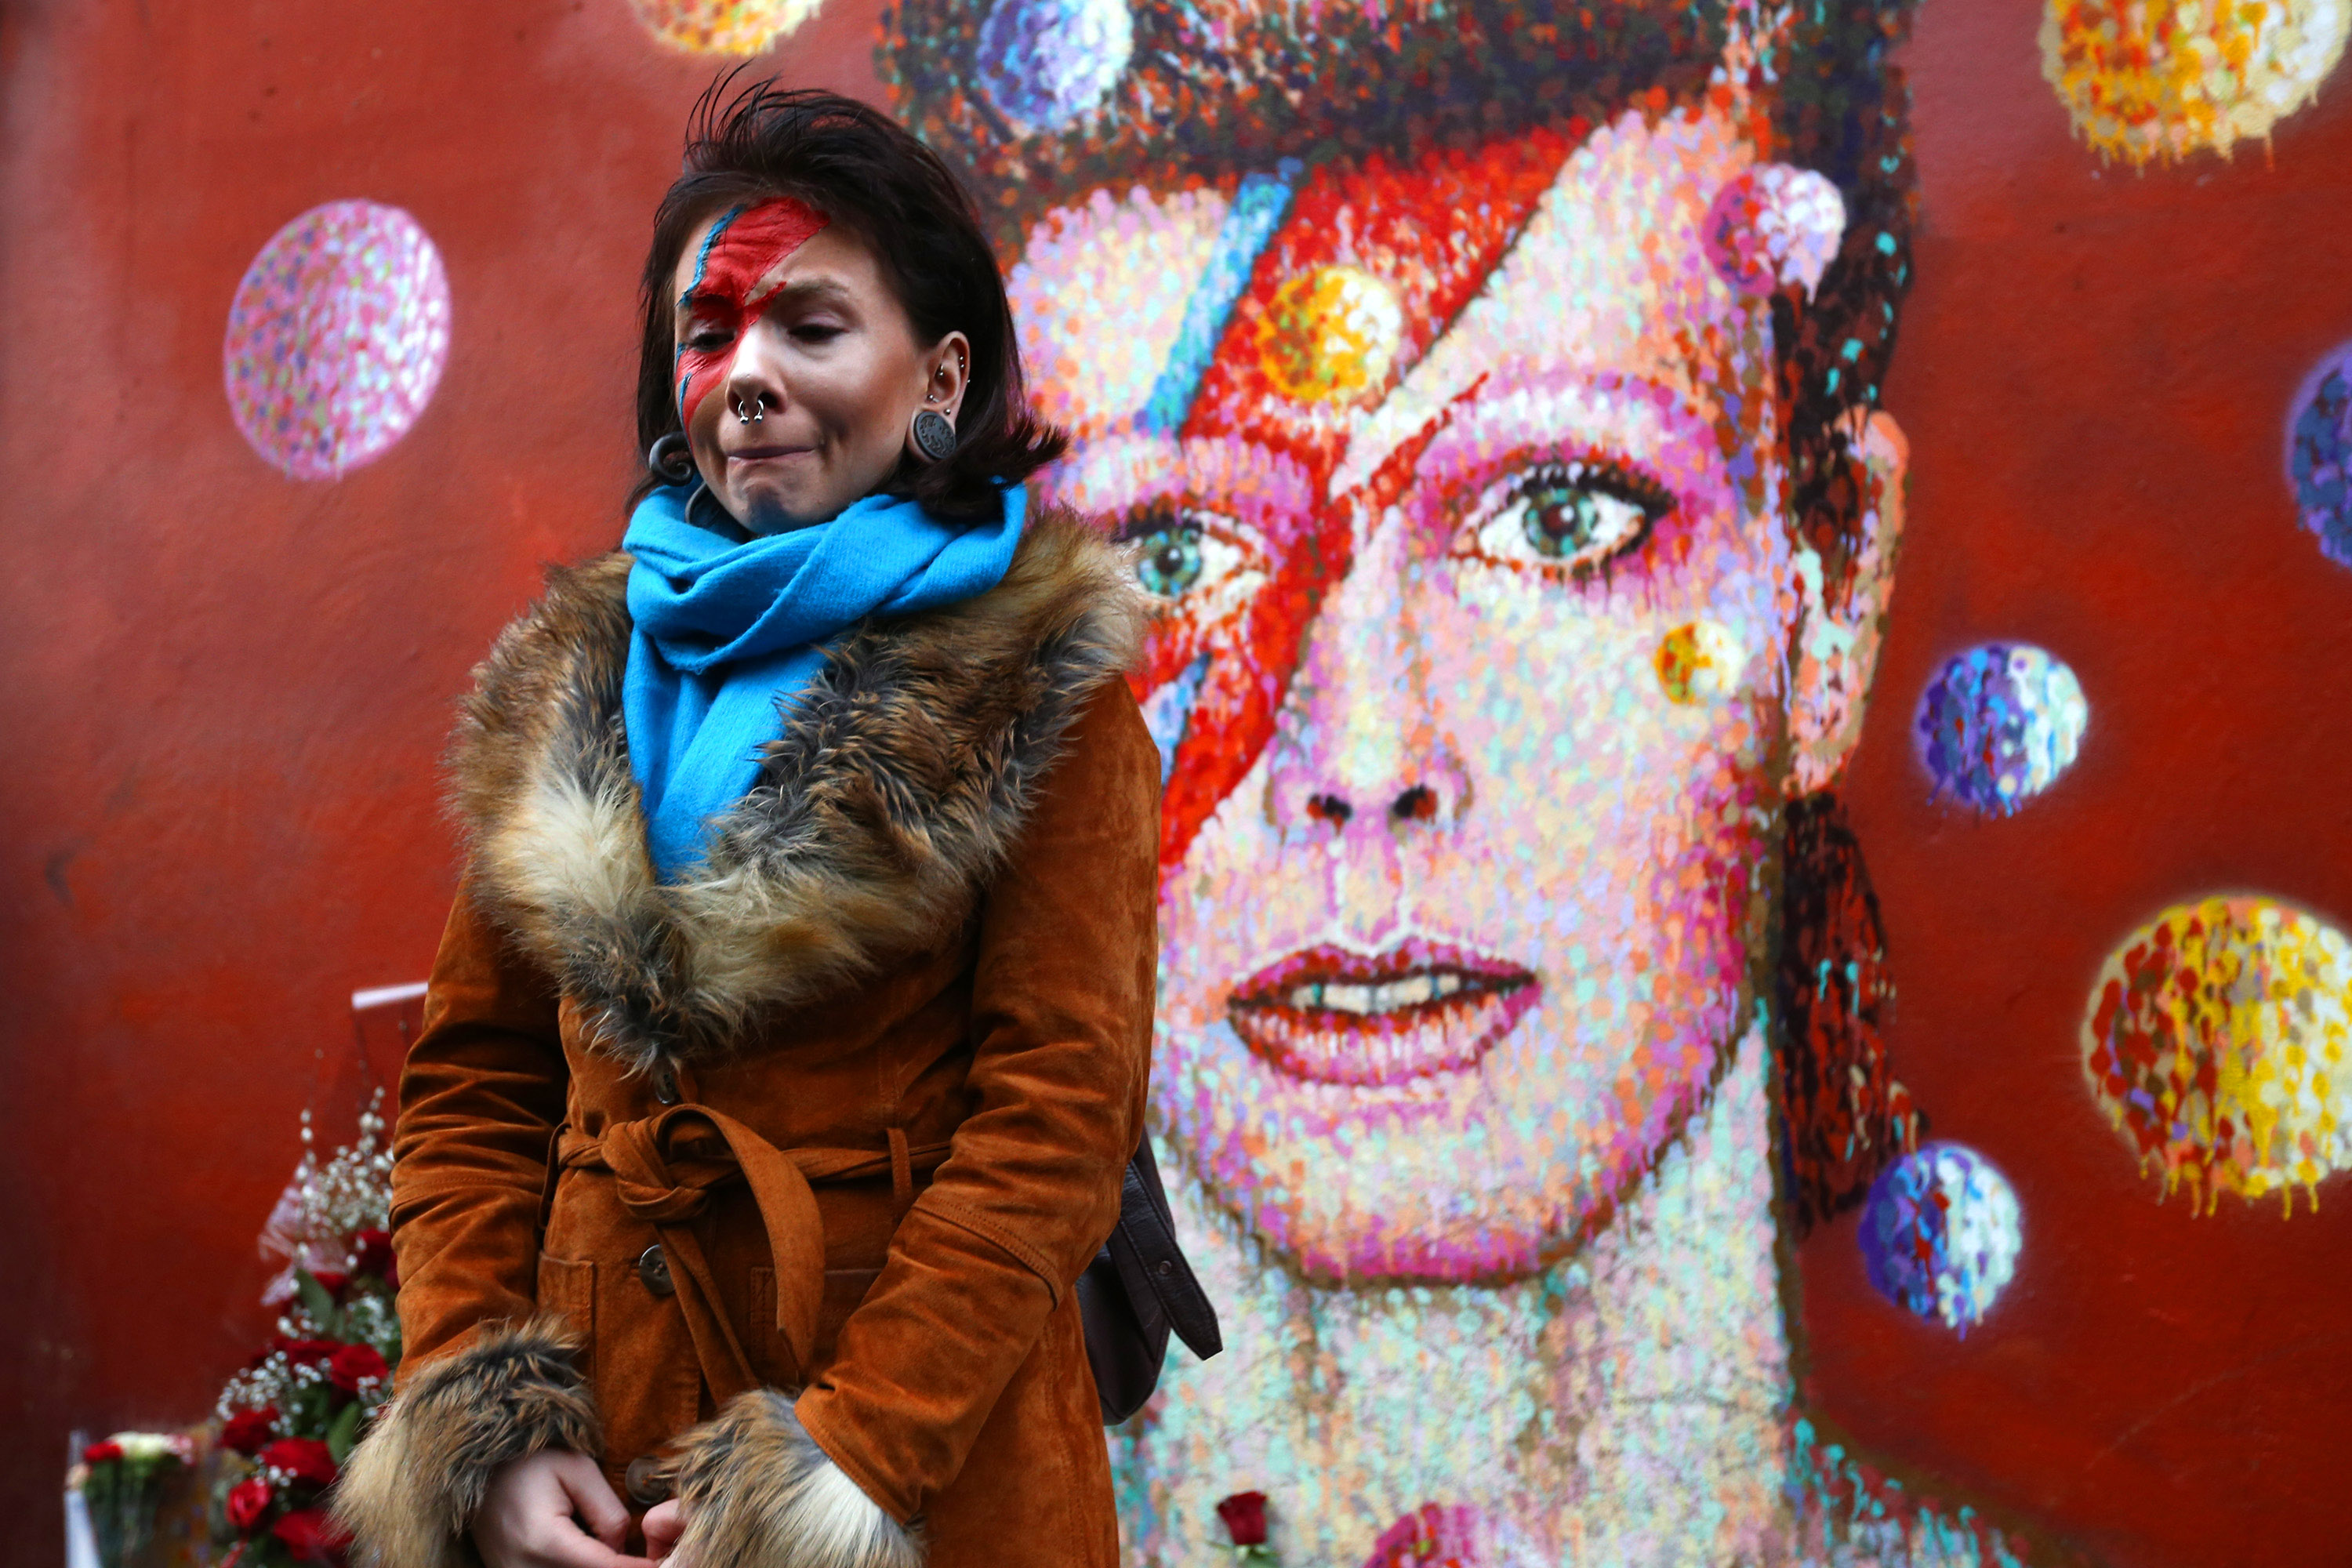 David Bowie fan Rosie Lowery pauses after laying flowers at his mural in Brixton on January 11, 2016 in London, England. British music and fashion icon David Bowie died earlier today at the age of 69 after a battle with cancer. Source: Getty